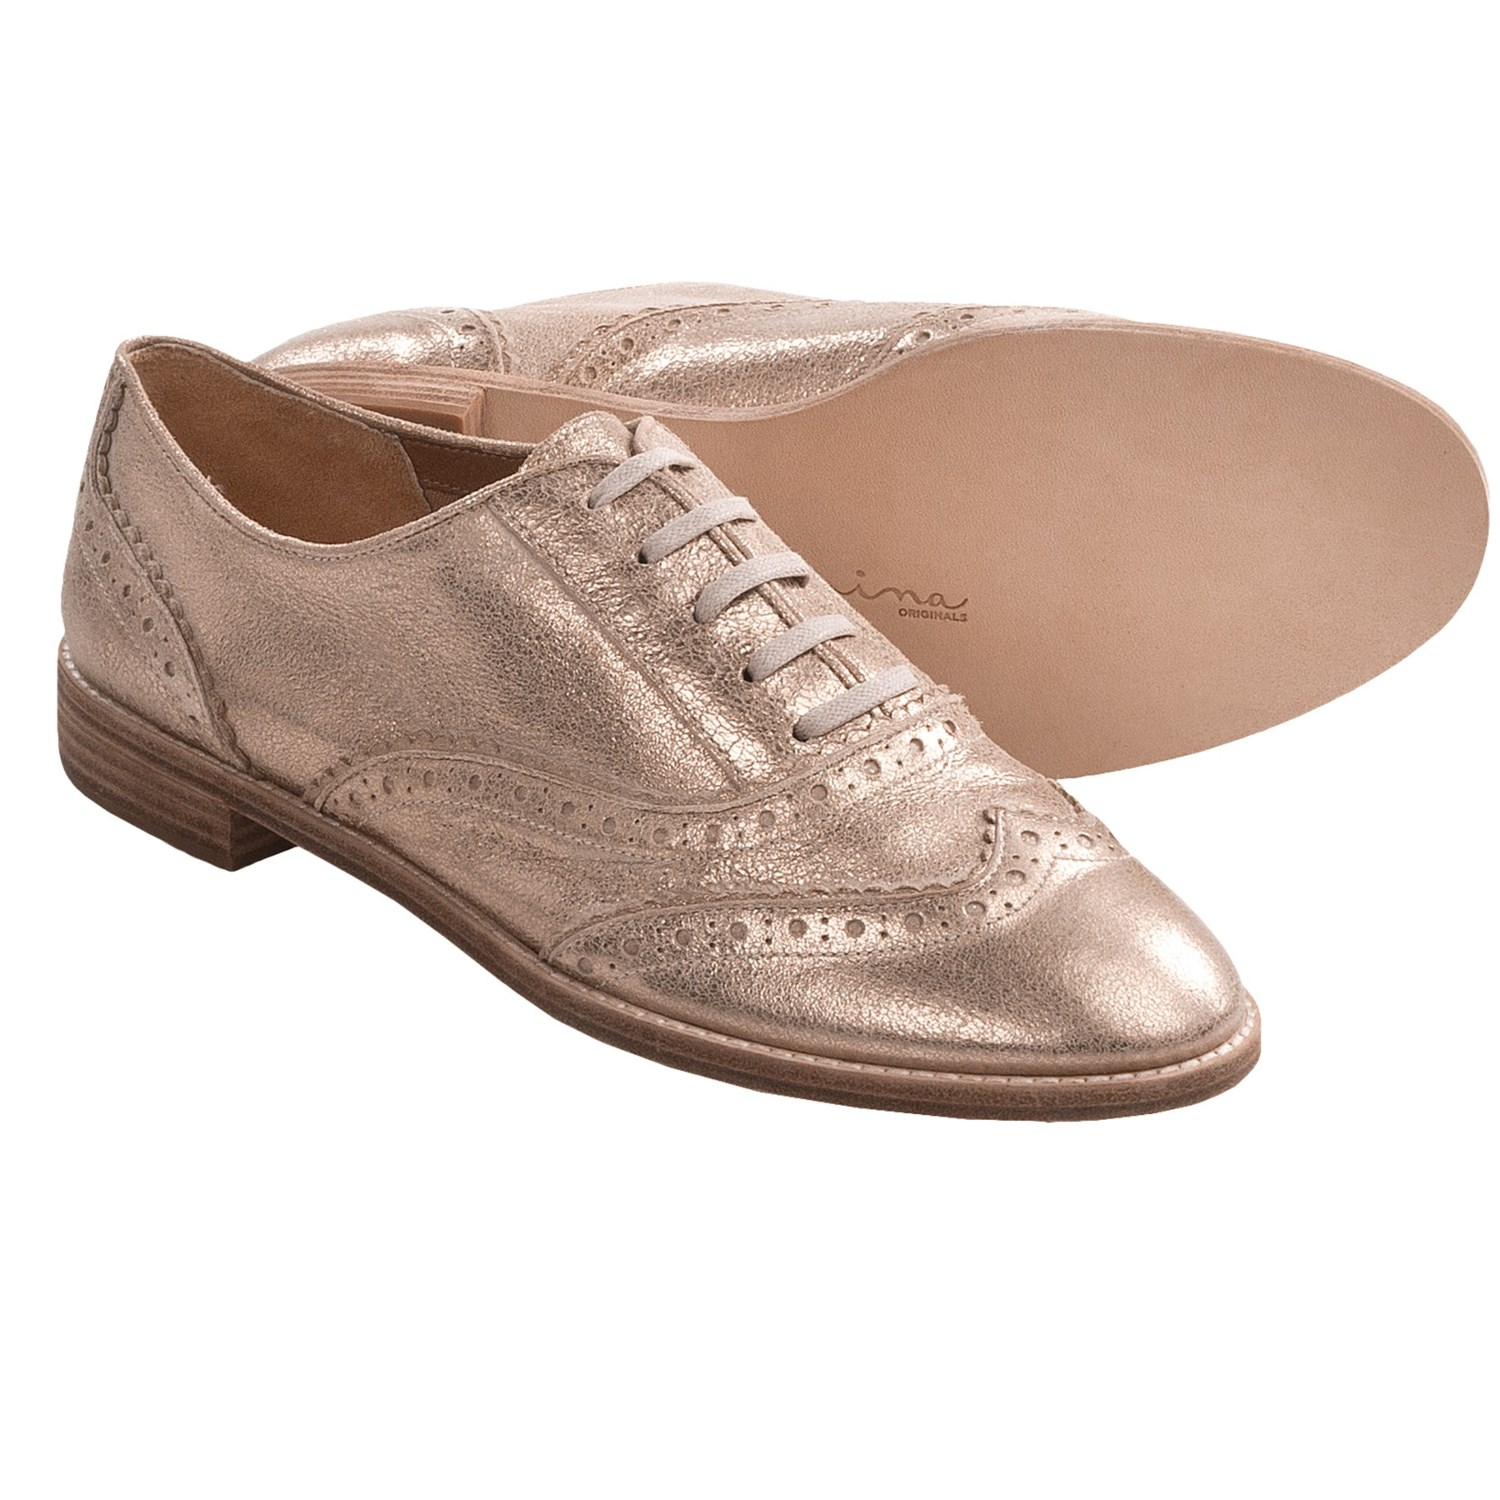 Breslyn Oxford Shoes for Women - So That's Cool